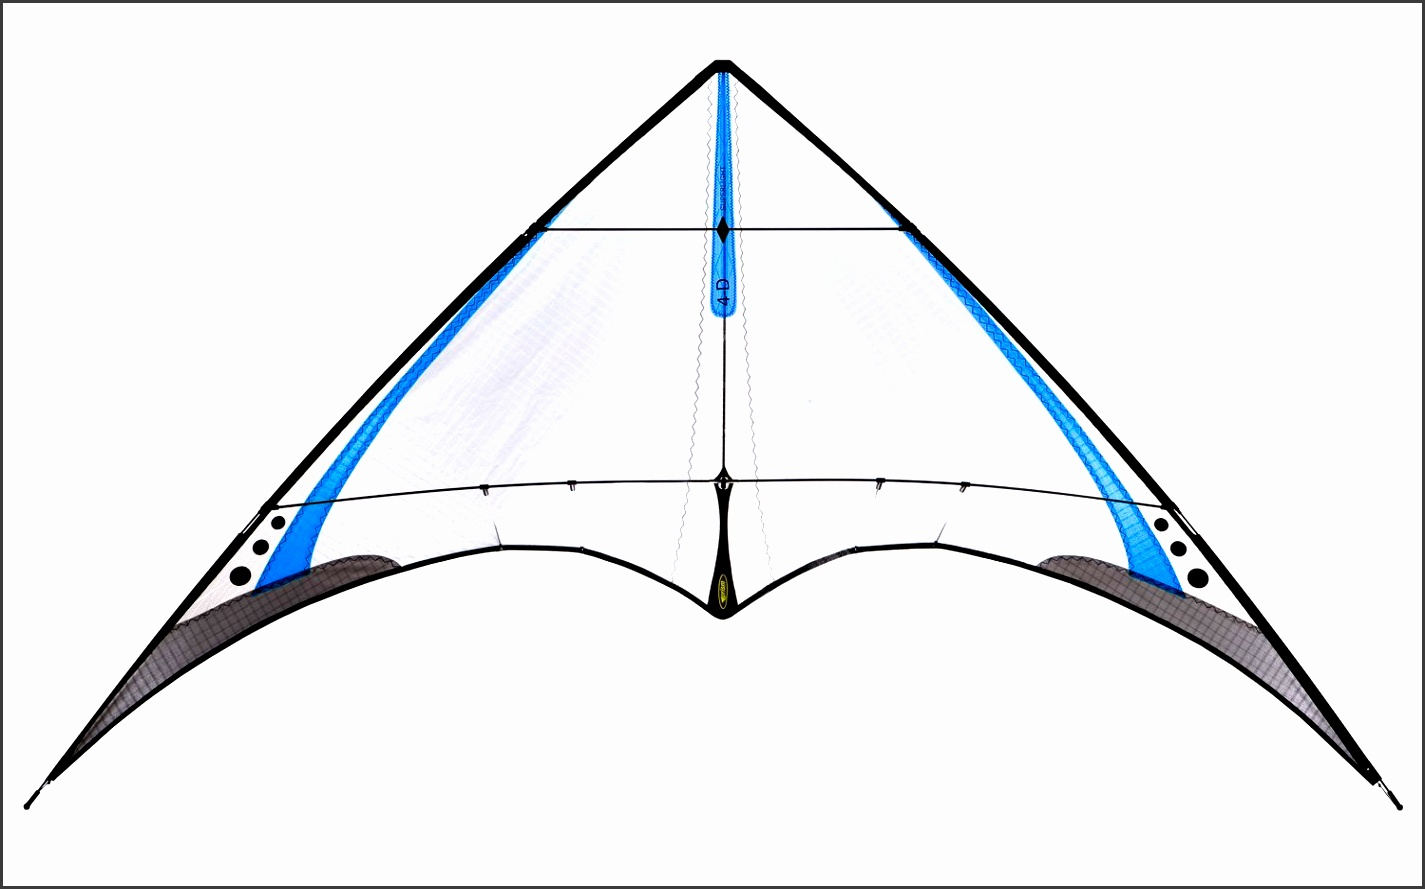 prism kites 4d stunt sport kite shown assembled cobalt color